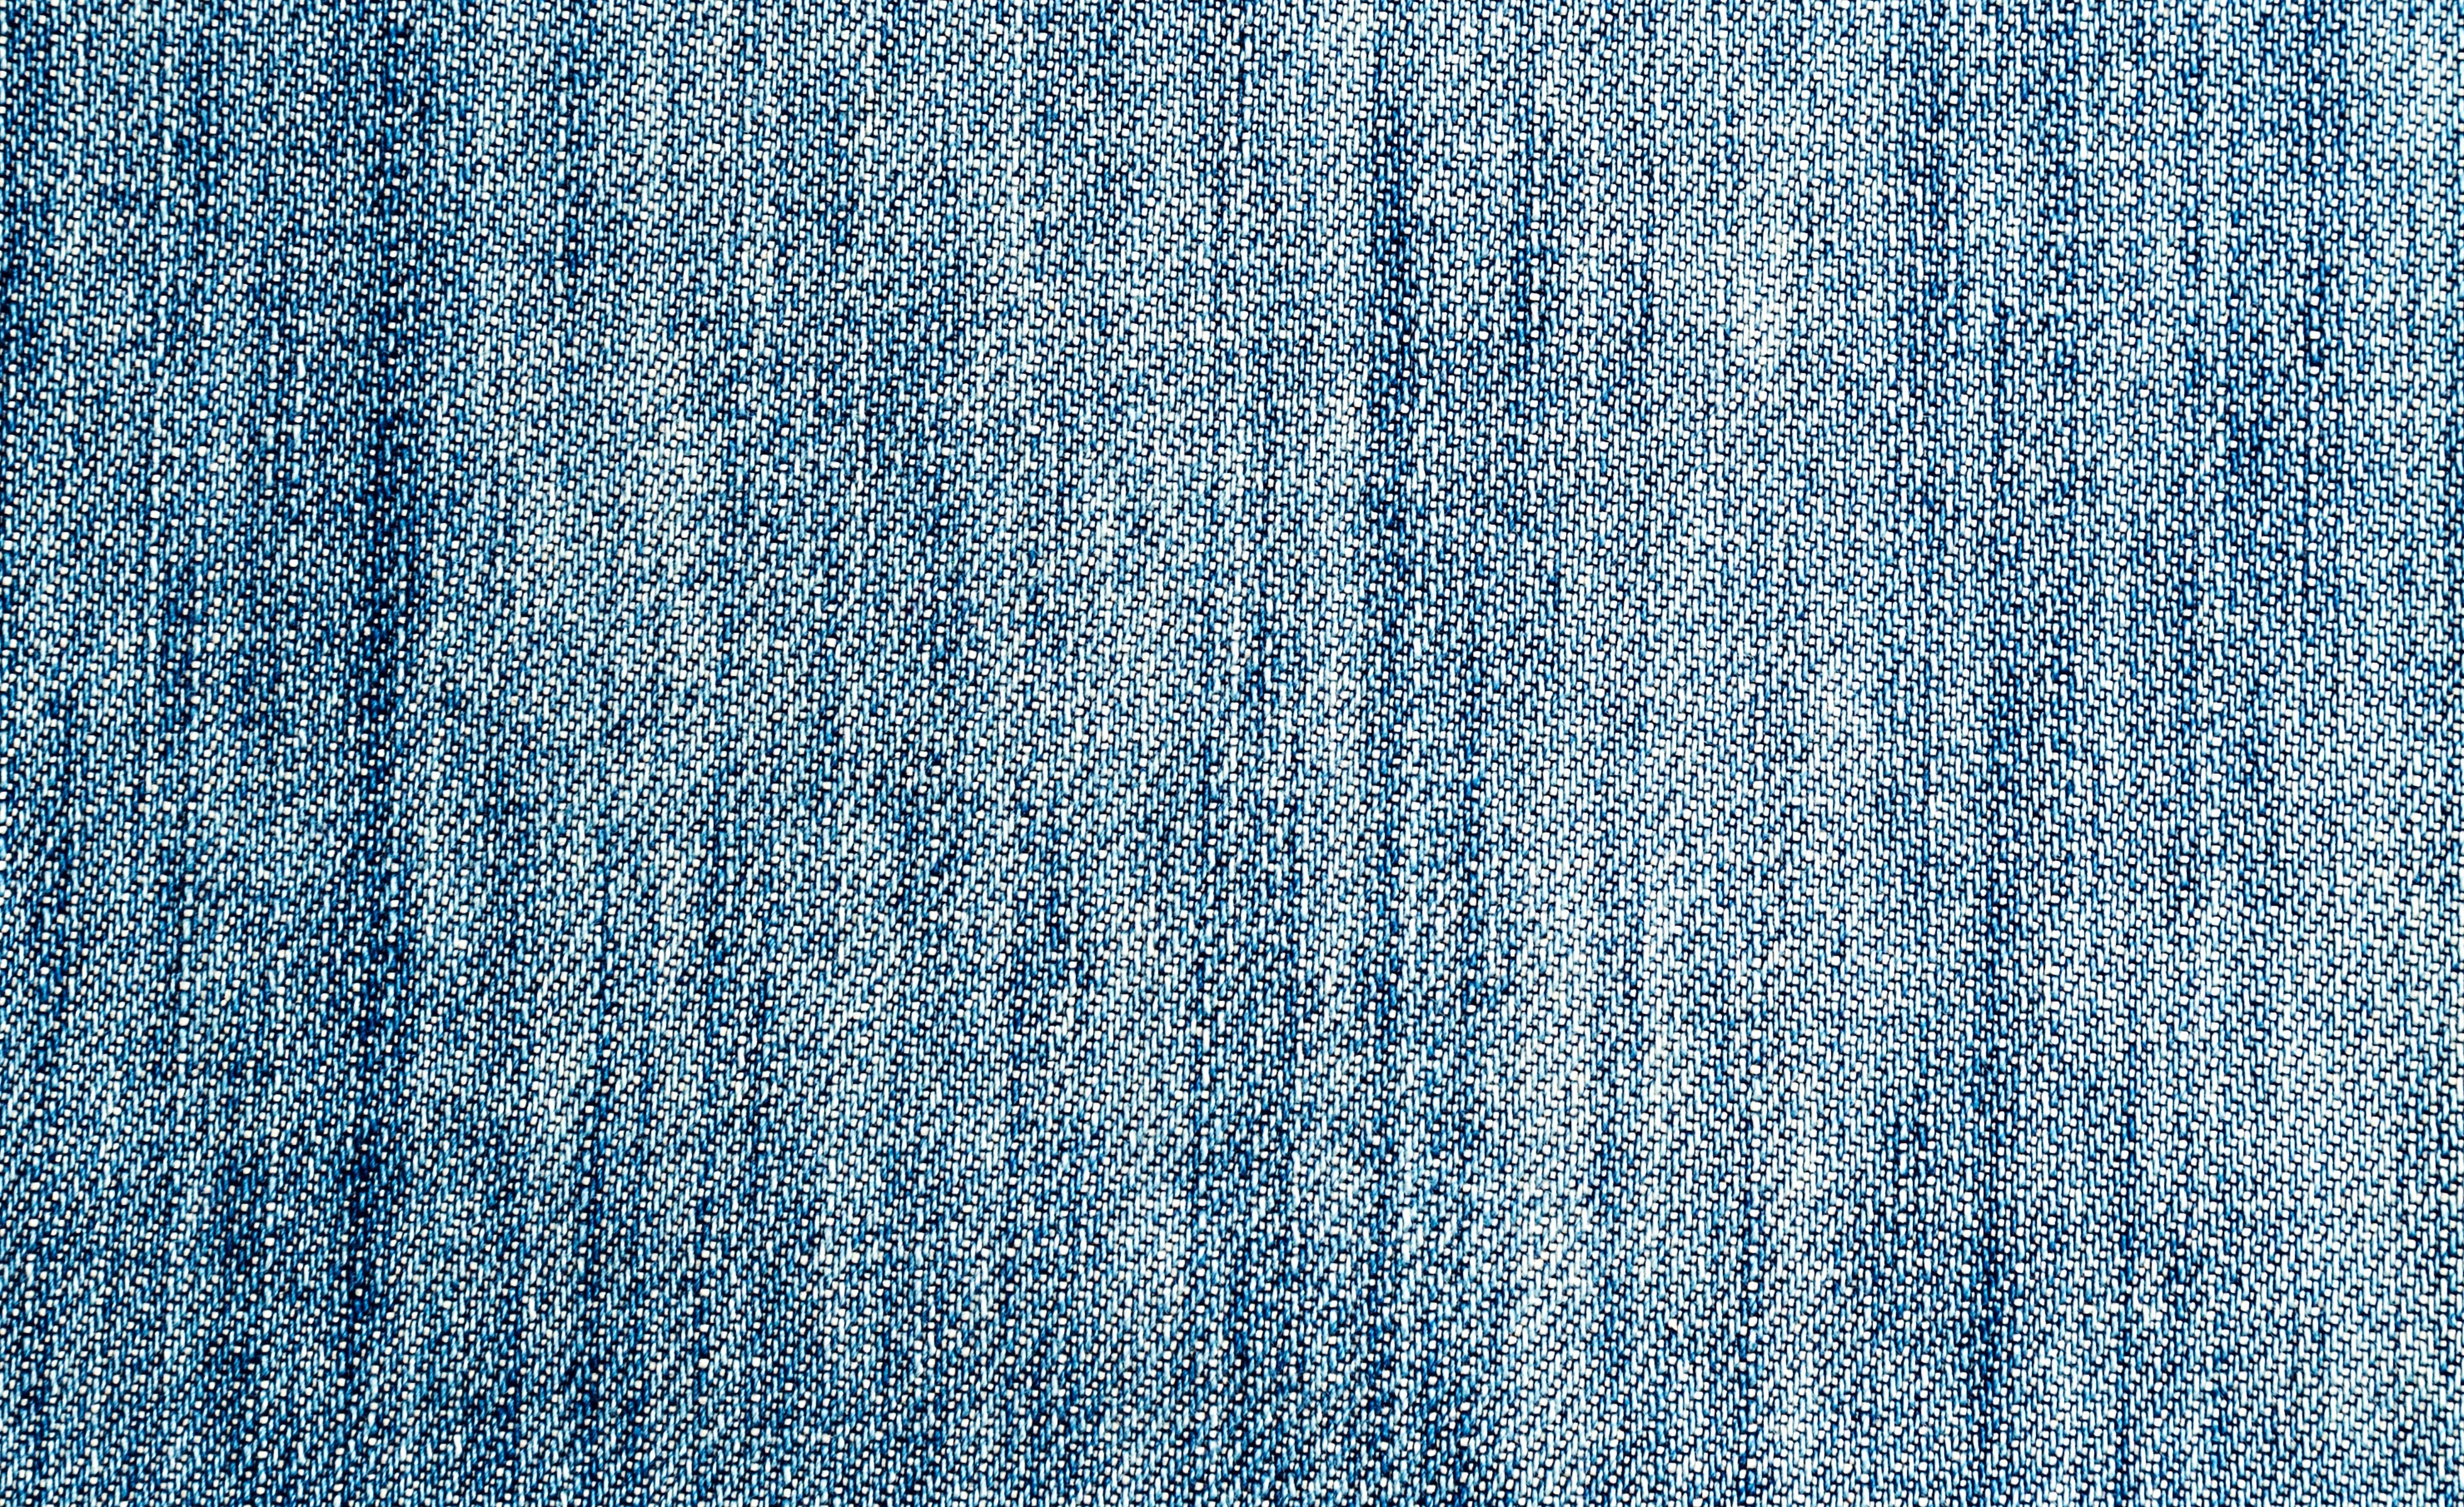 5918x3620 Jeans Fabric Thread - Free Stock Photos, Images, HD ...